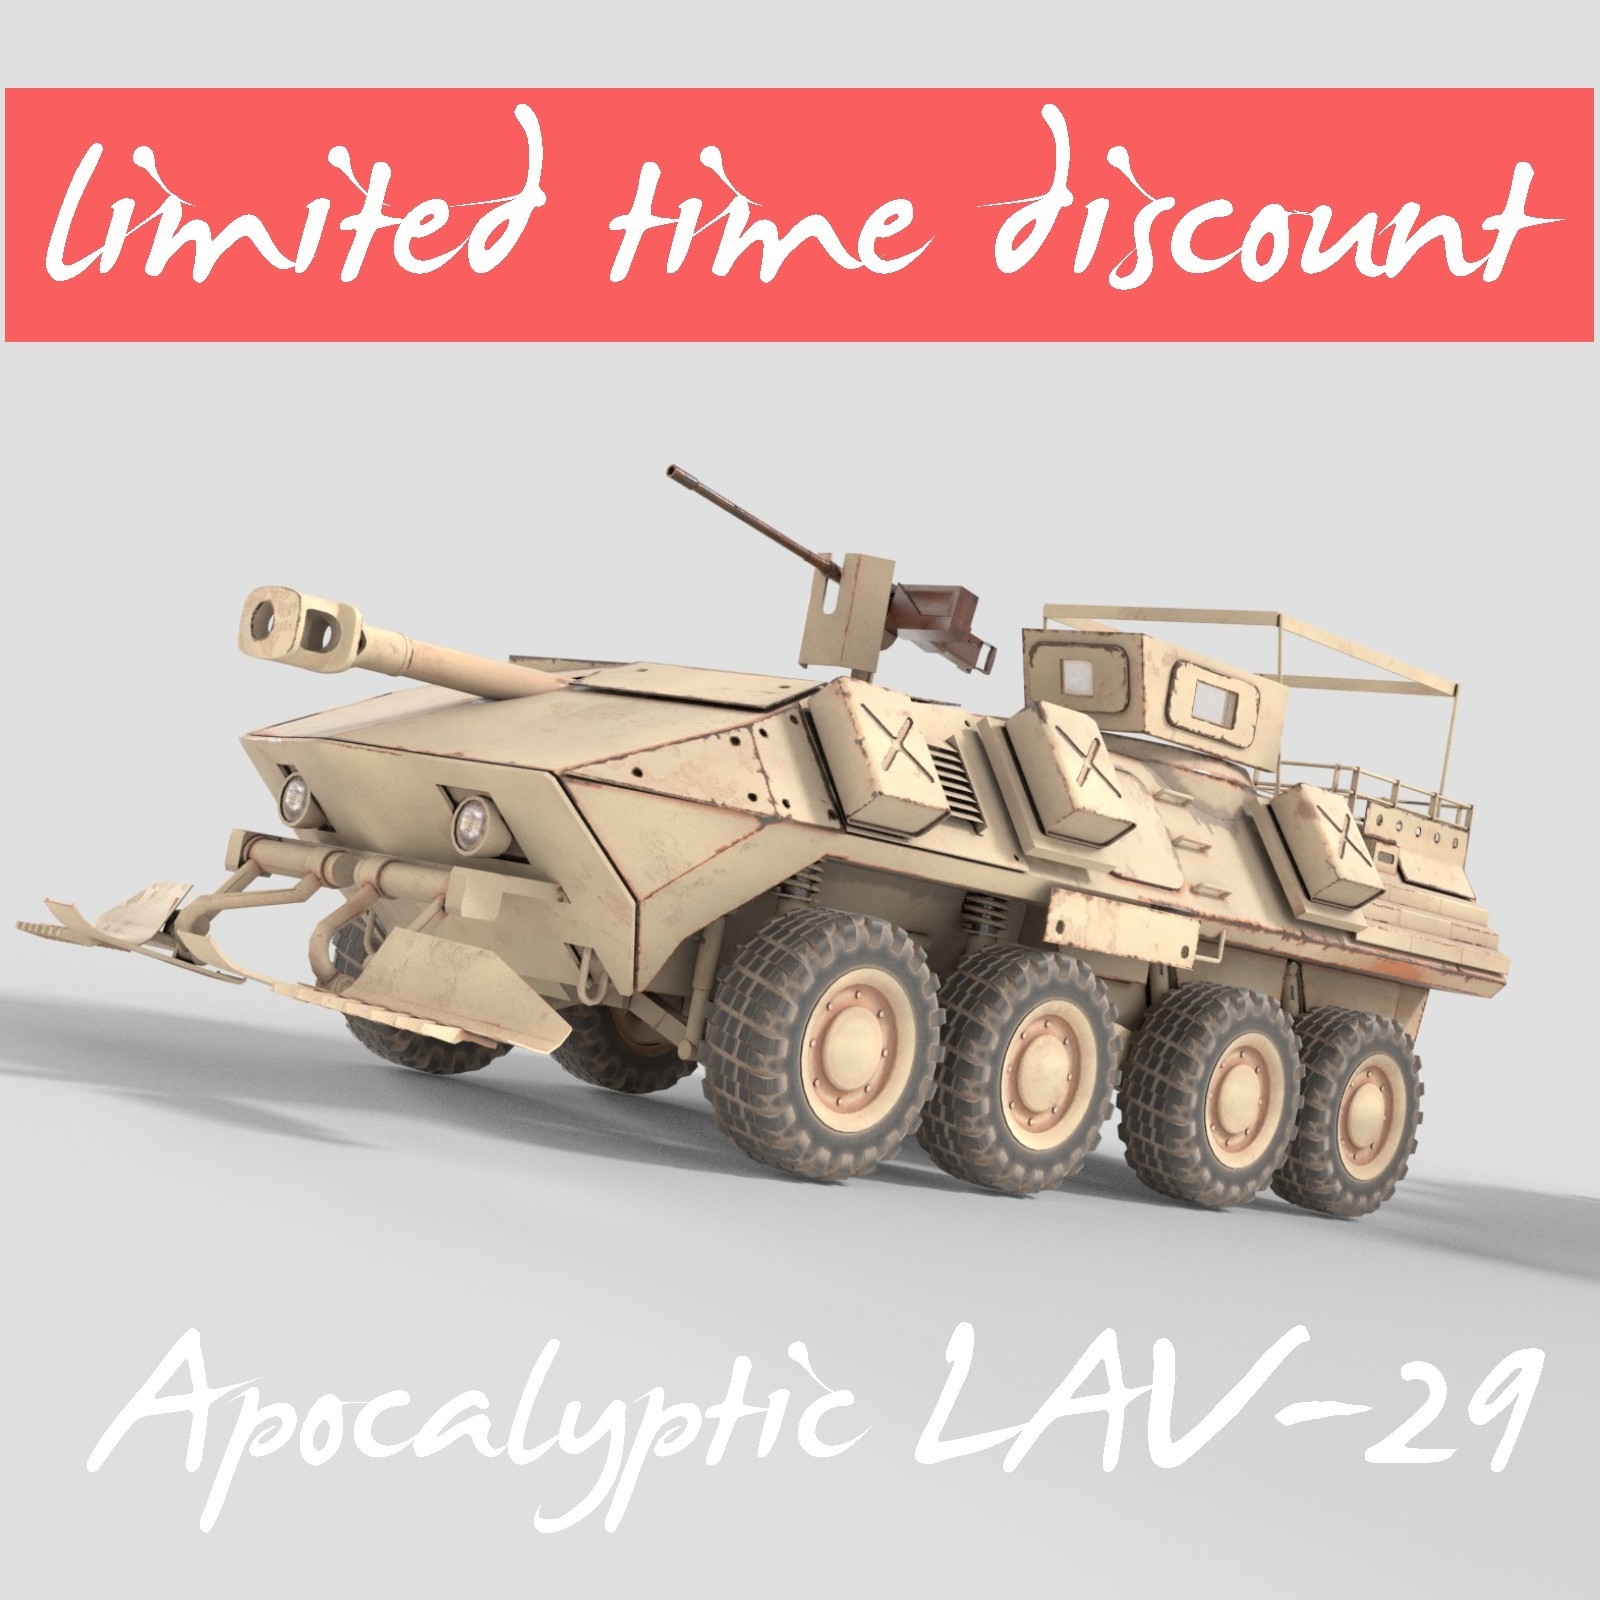 Apocalyptic LAV 25 - Extended License by MohamedAmir